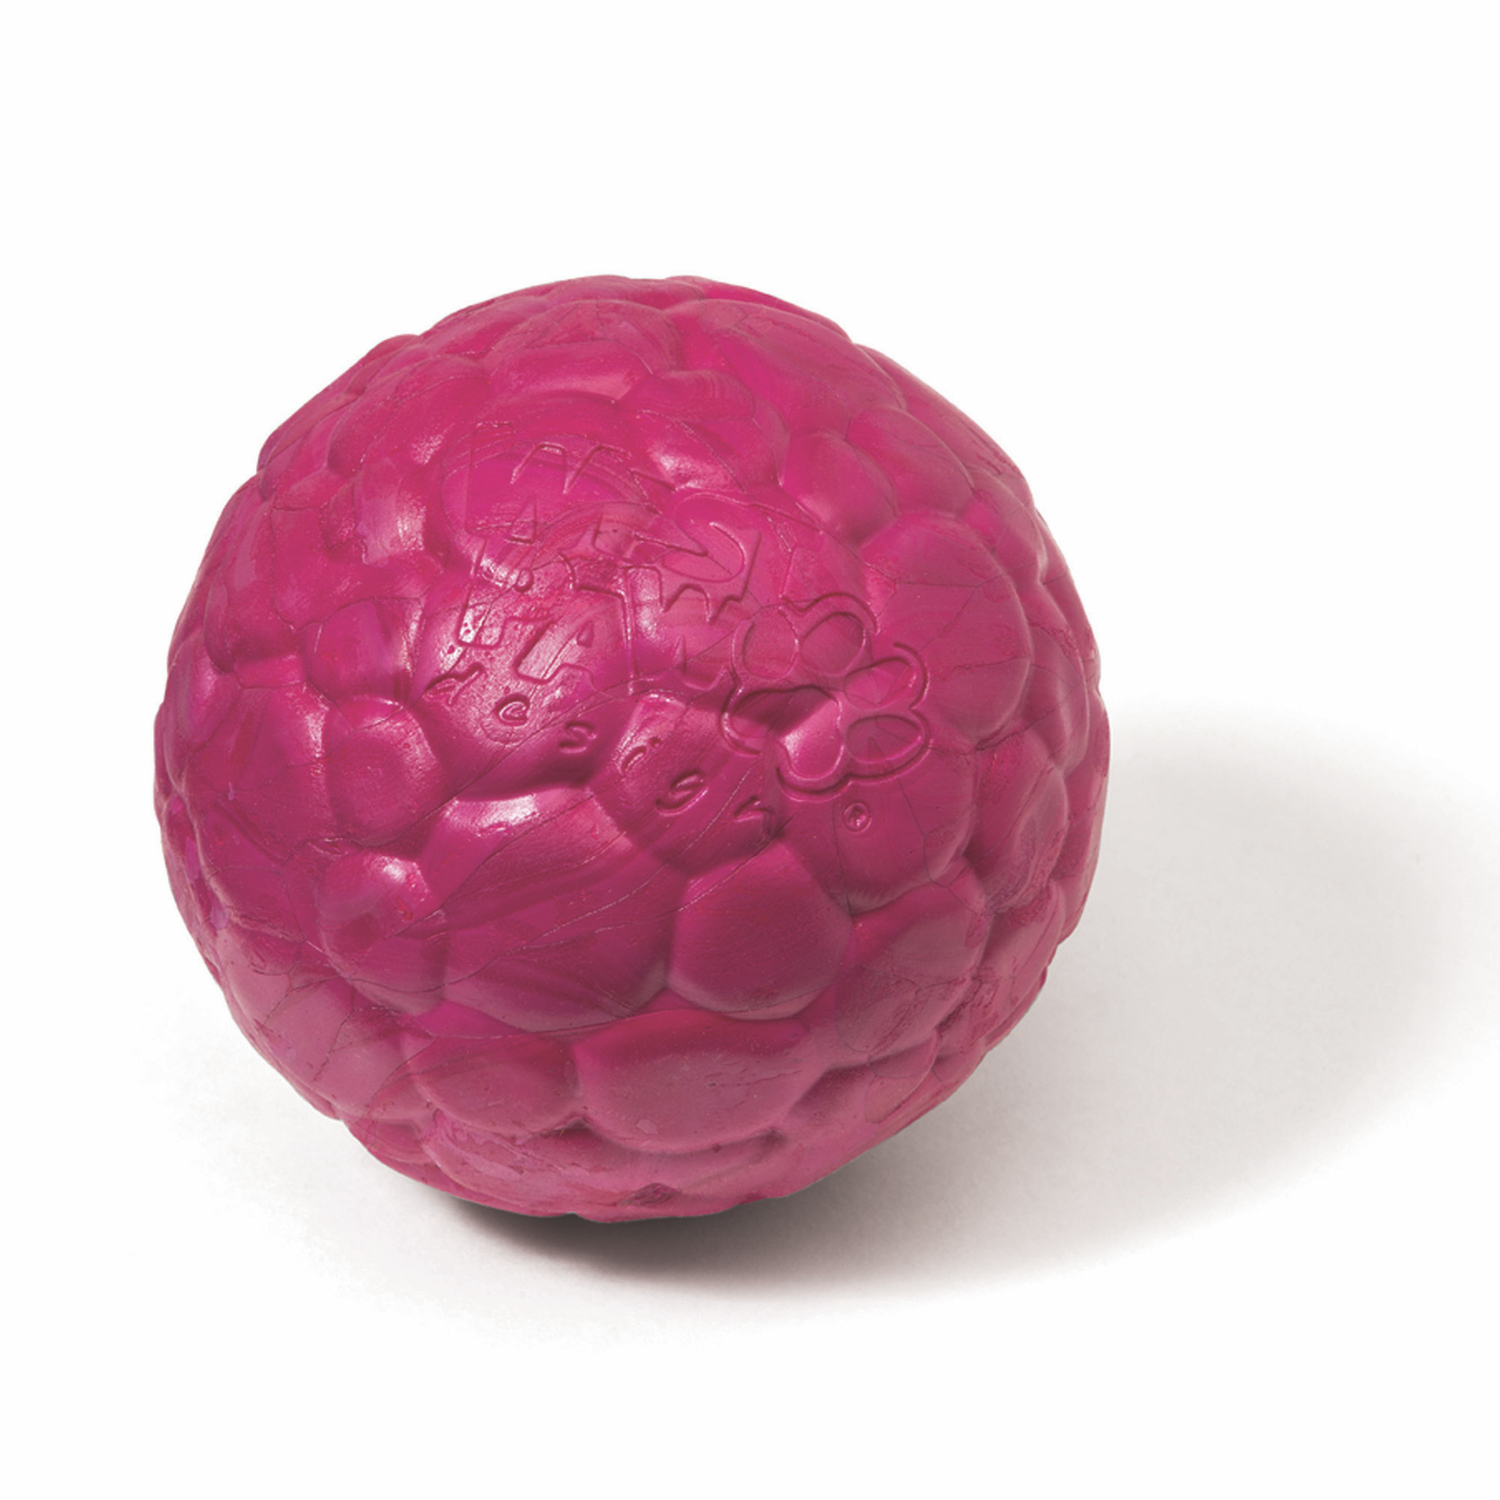 West Paw  Zogoflex Air  Pink  Boz Ball  Ball Dog Toy  Medium  Synthetic Rubber